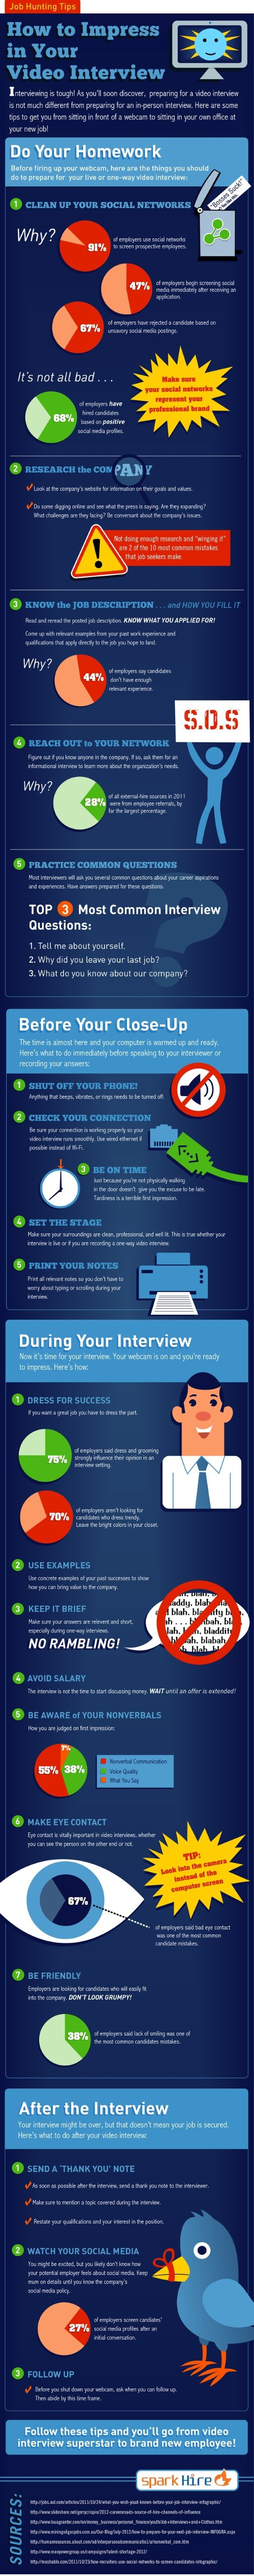 best images about interview tips tips for how to impress during your next virtual job interview infographic